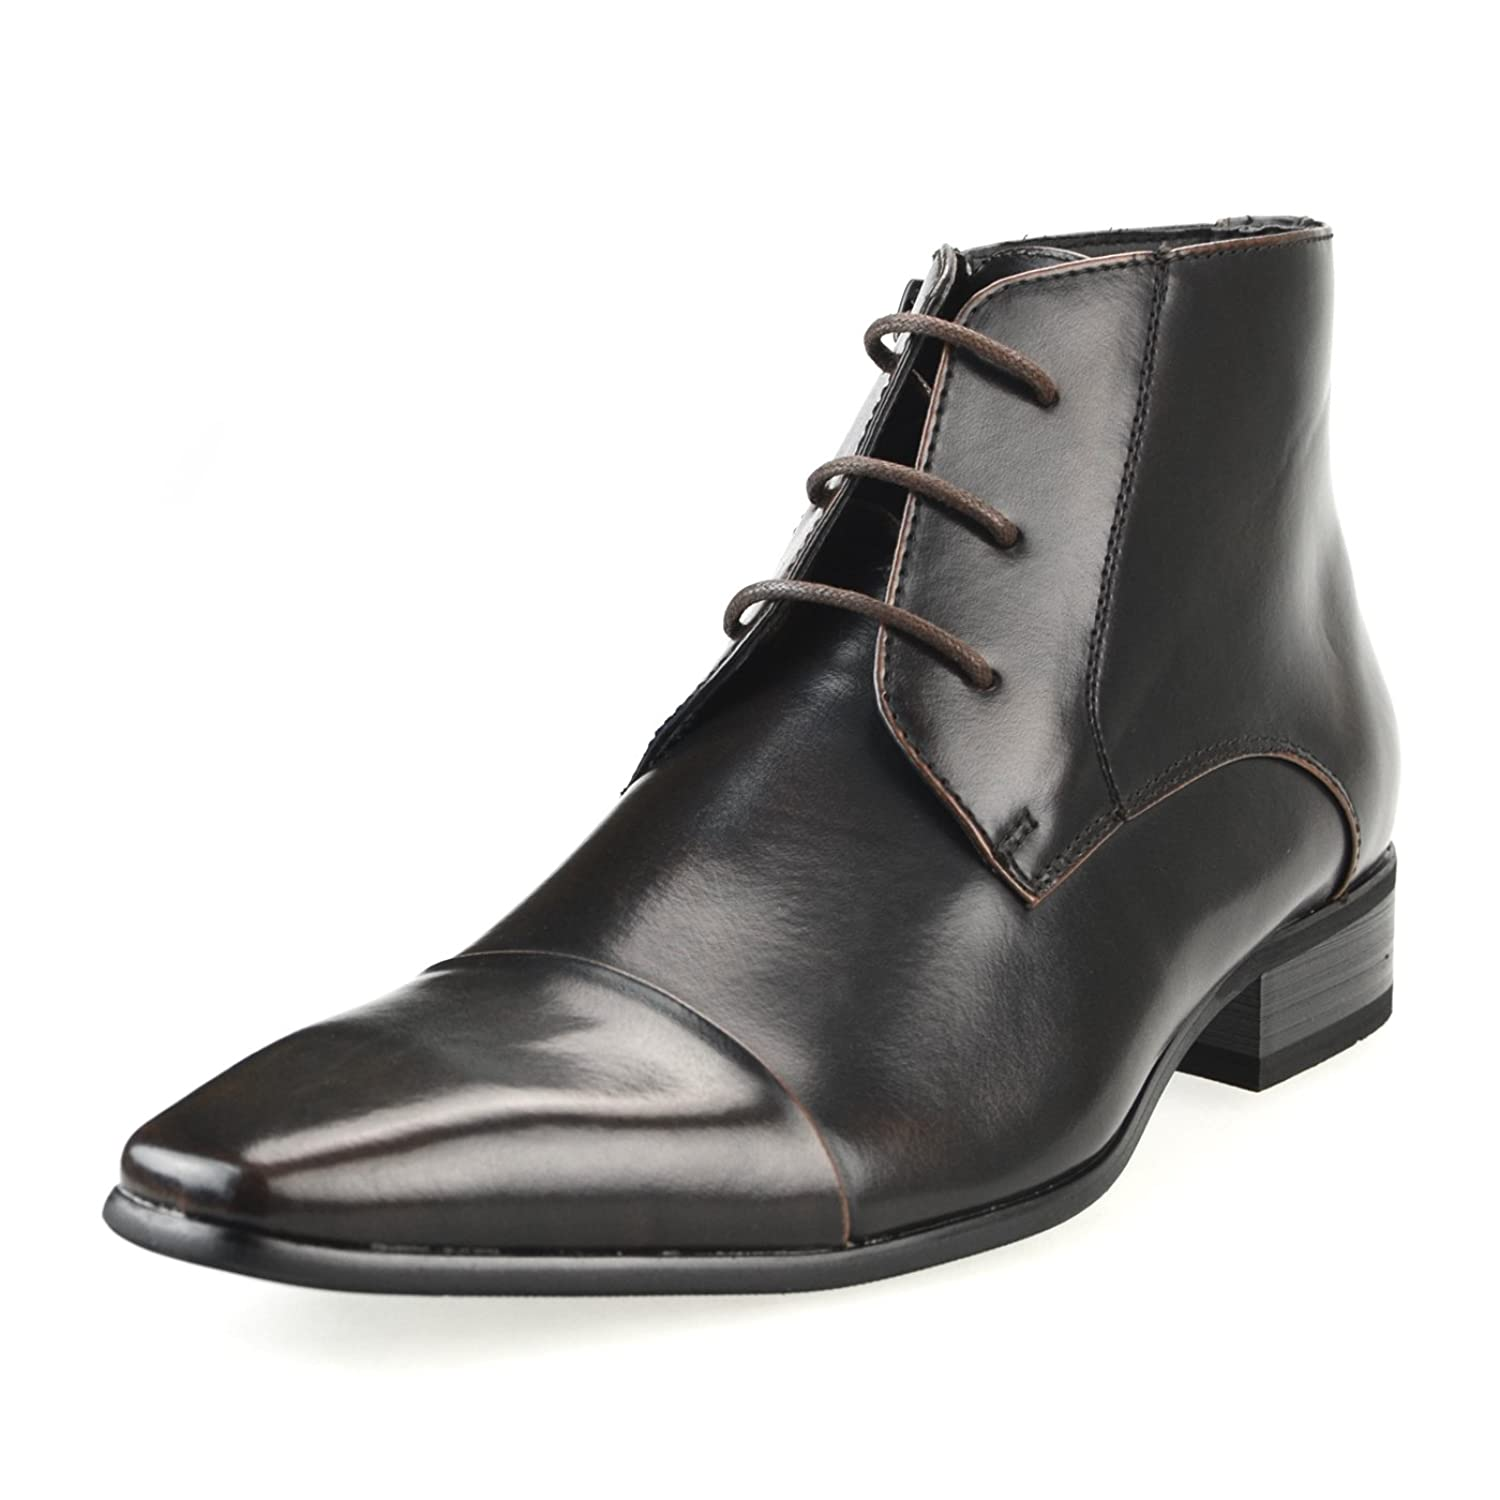 MM/ONE Oxford Shoes Chukka Boots Short Boots Embossing Plain Pointed Cap toe Round Black Dark Brown